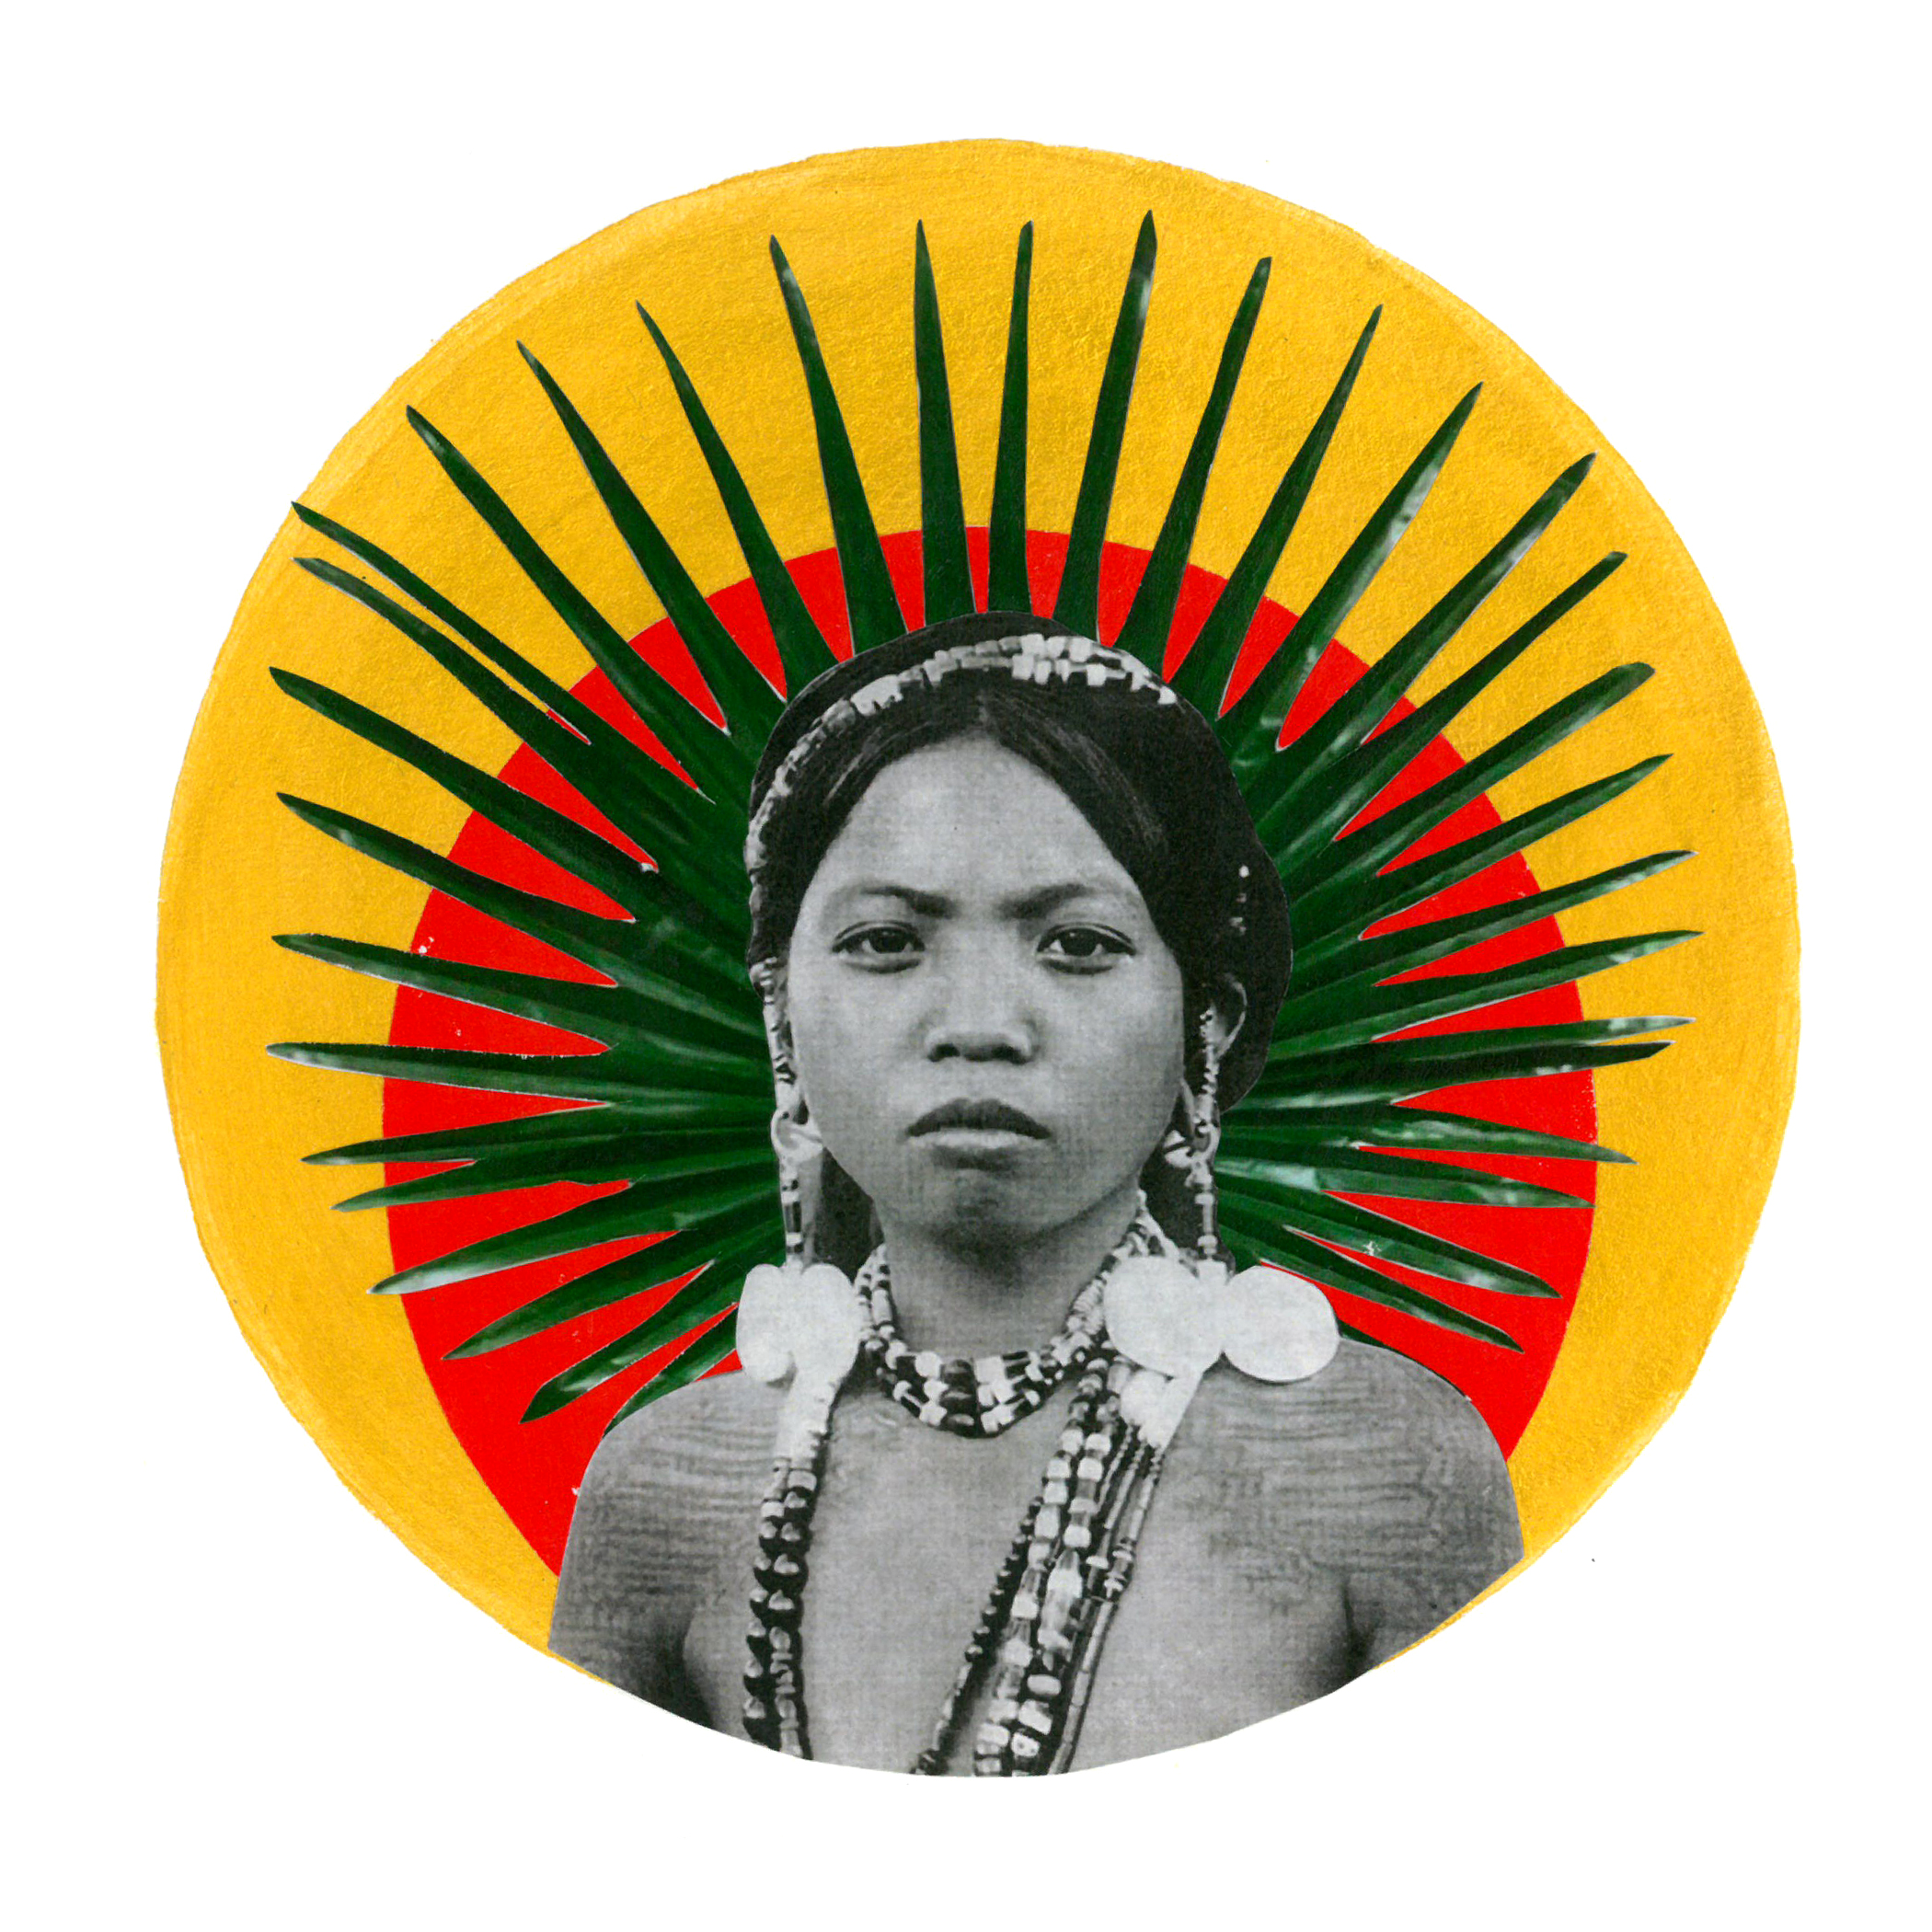 Multimedia portrait of a Kalinga woman with a plant behind her head that resembles a crown